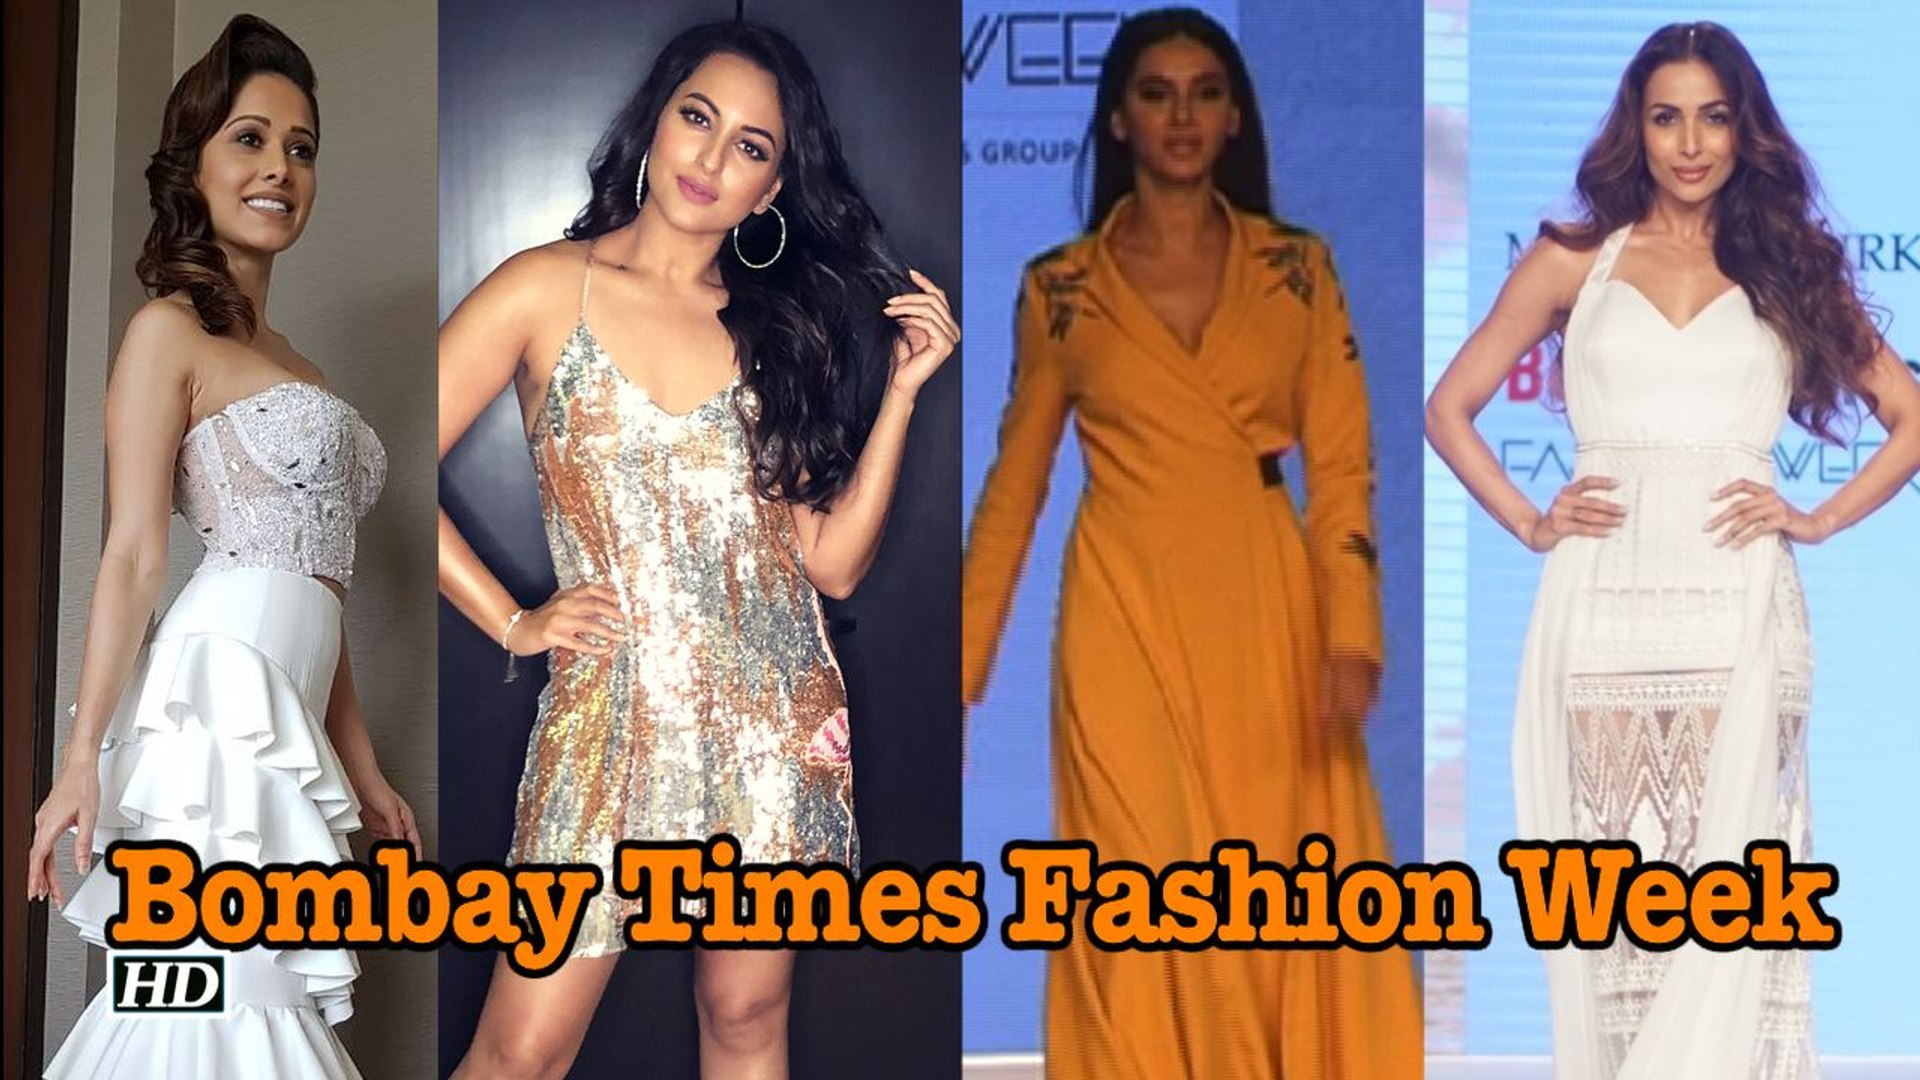 Full Video: Celebs at Bombay Times Fashion Week 2018